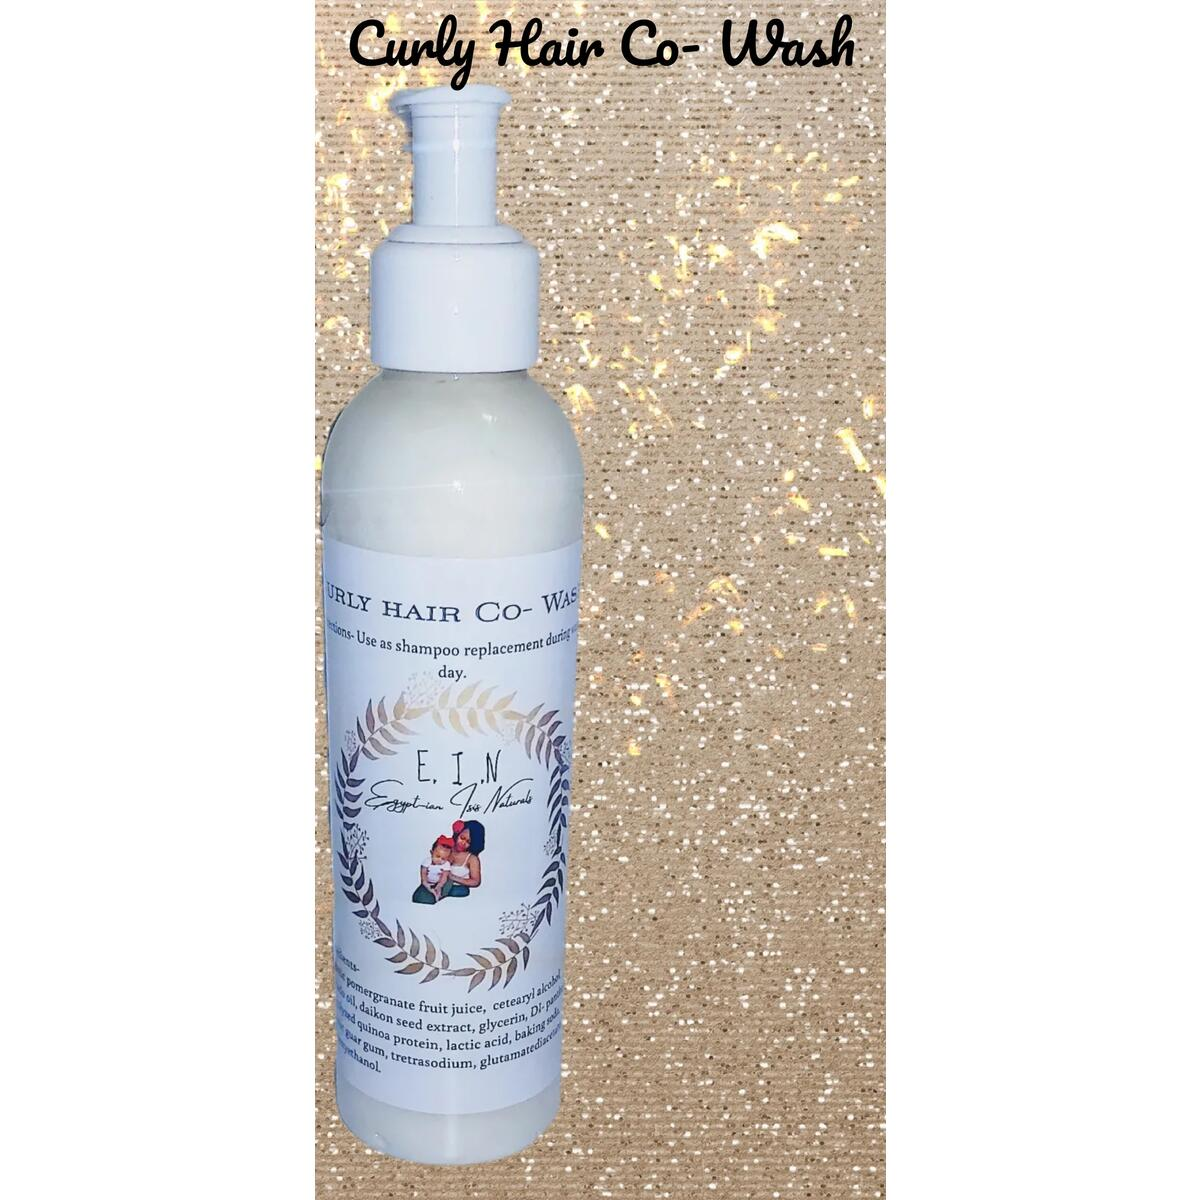 Curly hair Co- Wash conditioner